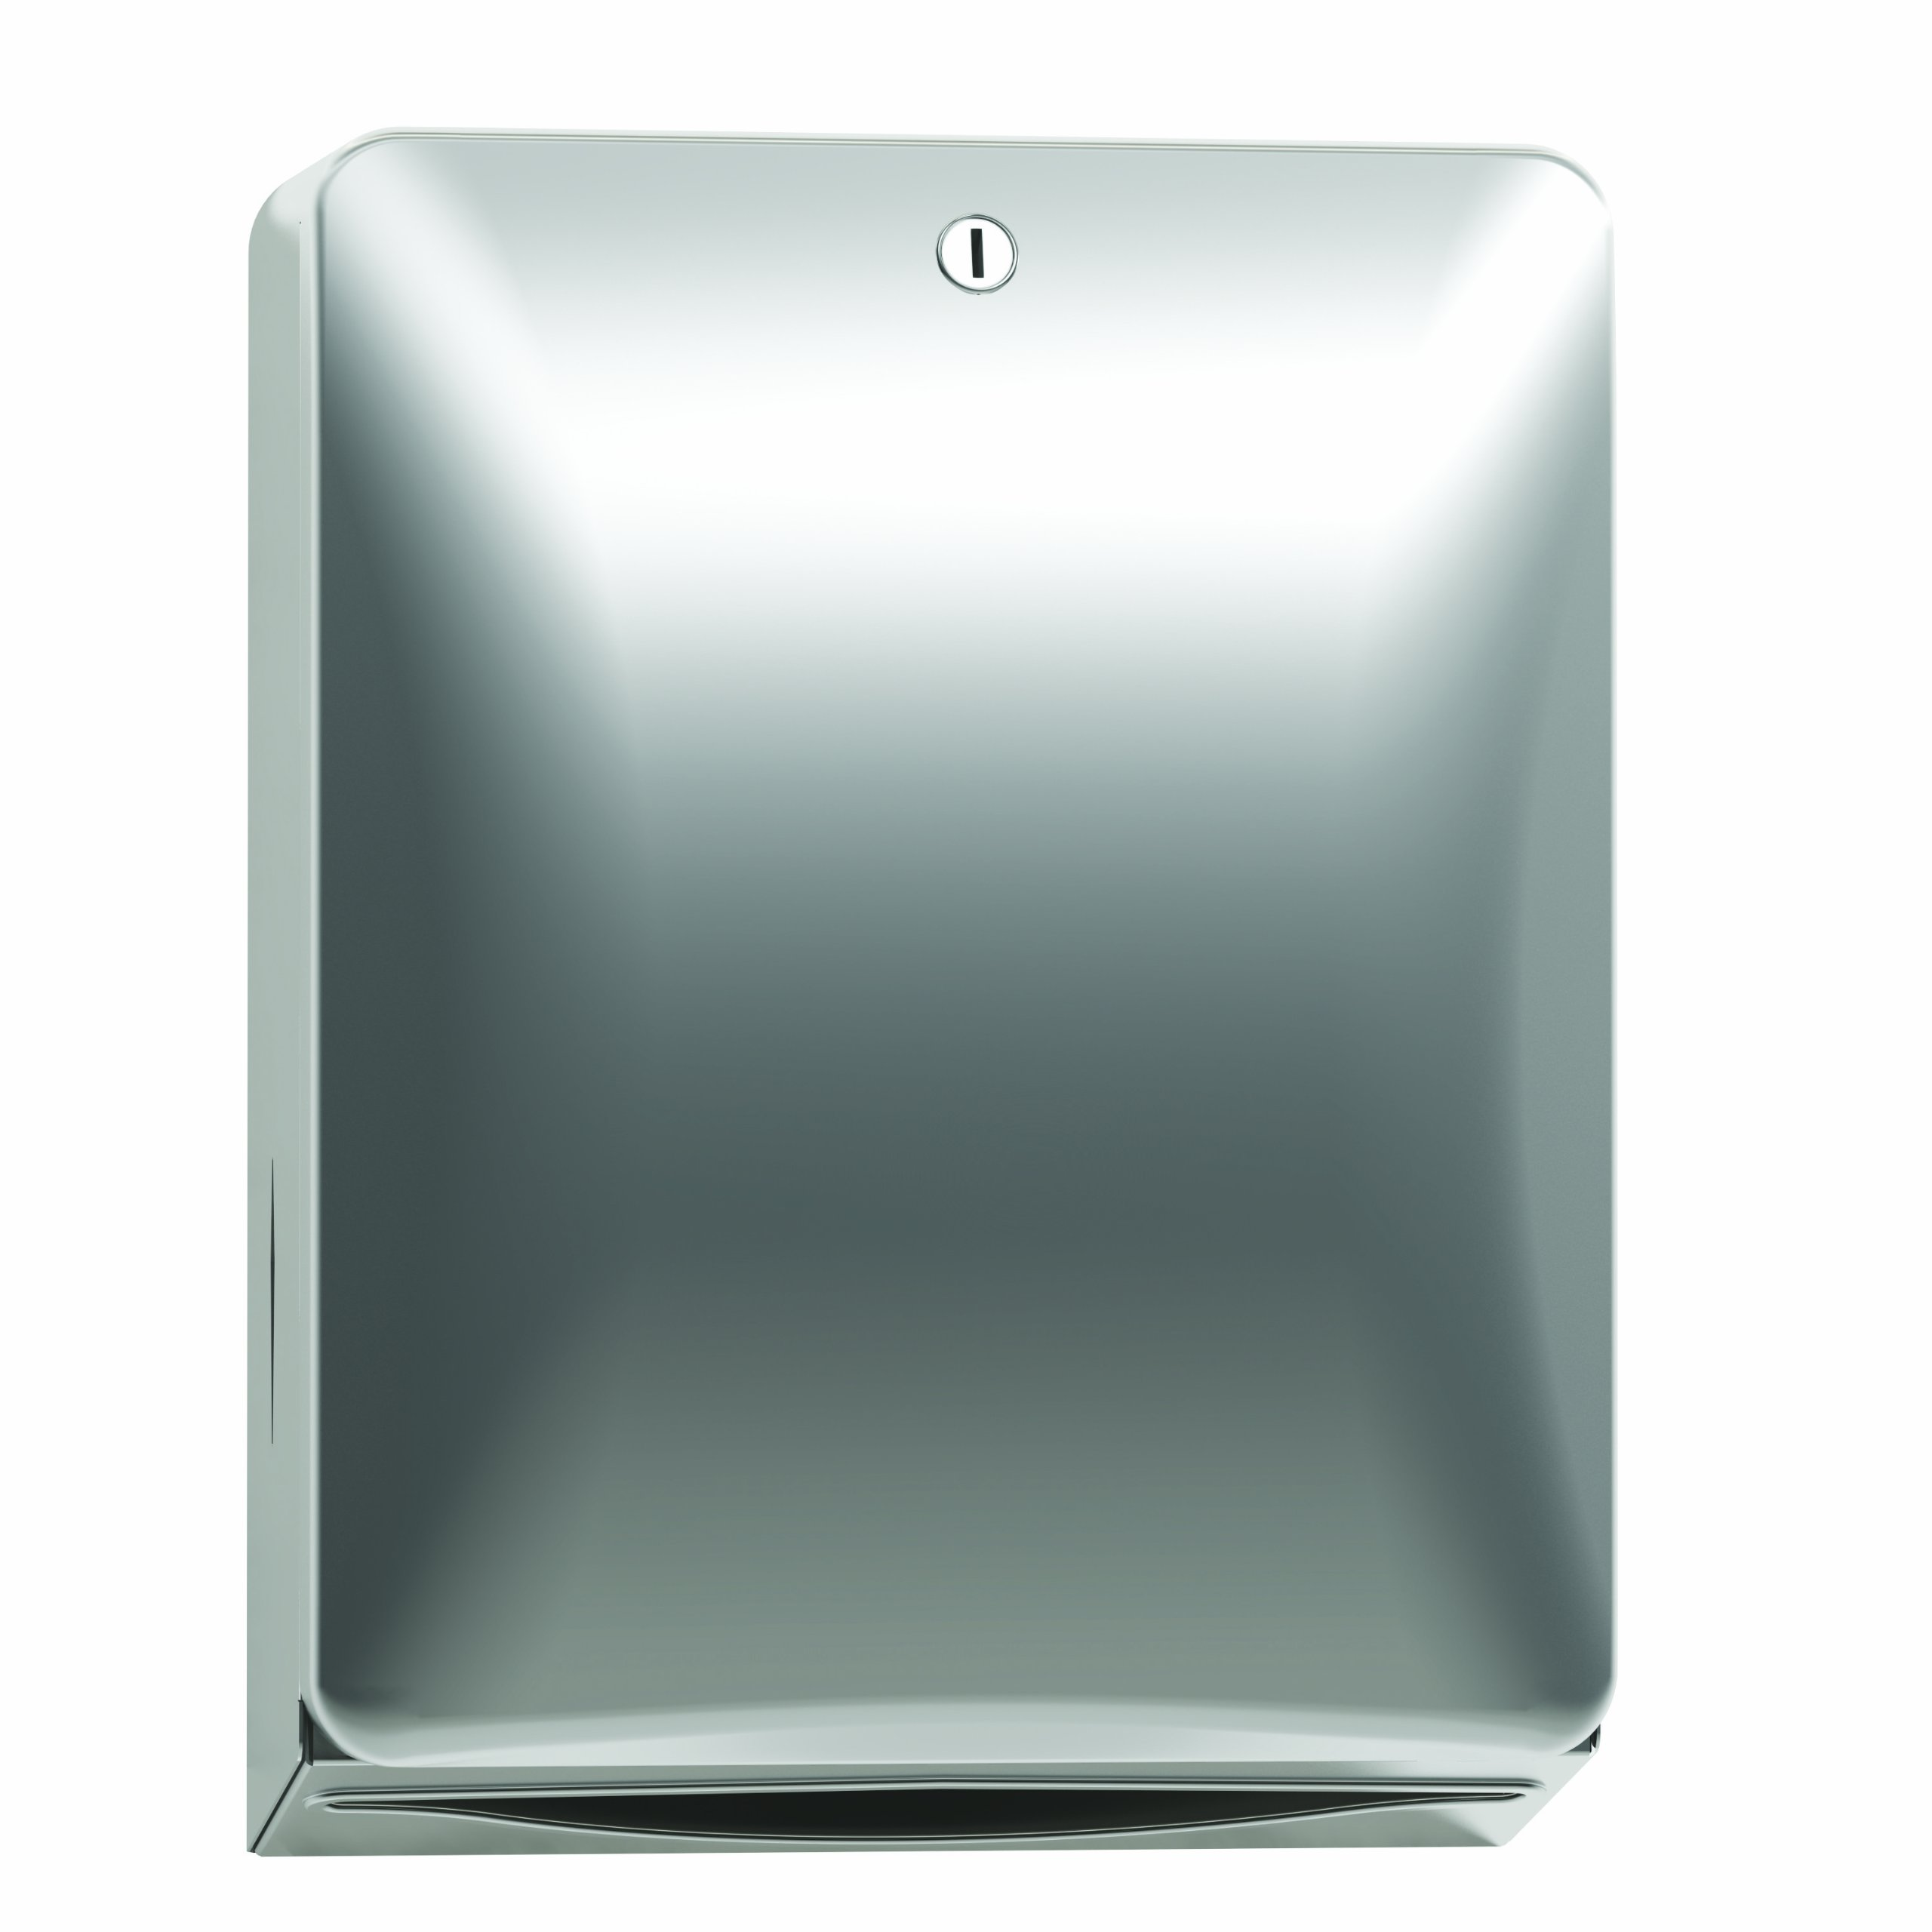 Bradley 2A10-110000 Diplomat Stainless Steel Surface Mounted Folded Paper Towel Dispenser, 11'' Width x 14-3/8'' Height x 5-1/4'' Depth